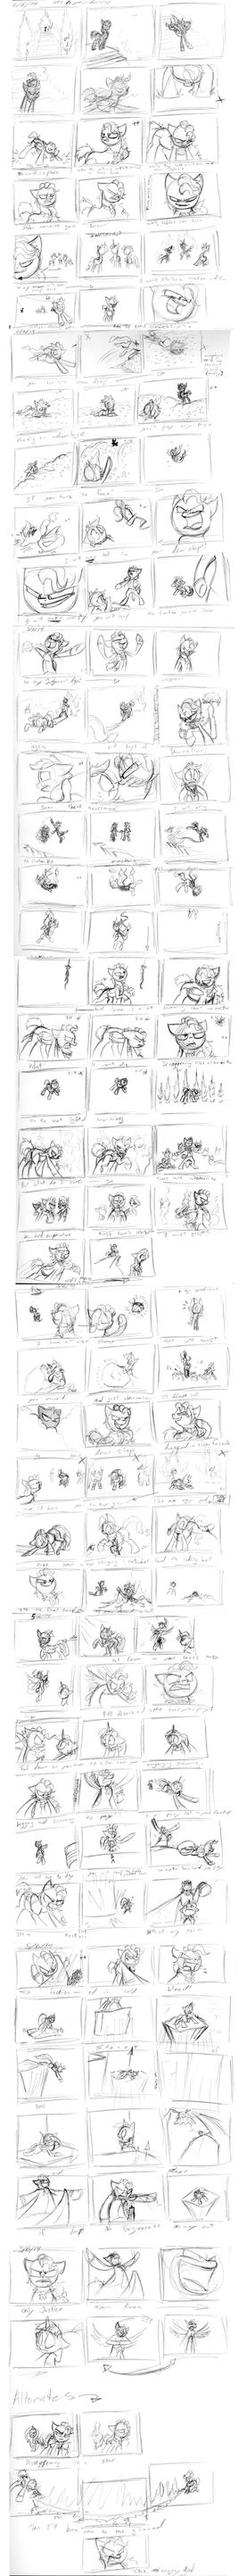 Hell To Your Doorstep: Original Storyboard by Assassin-or-Shadow